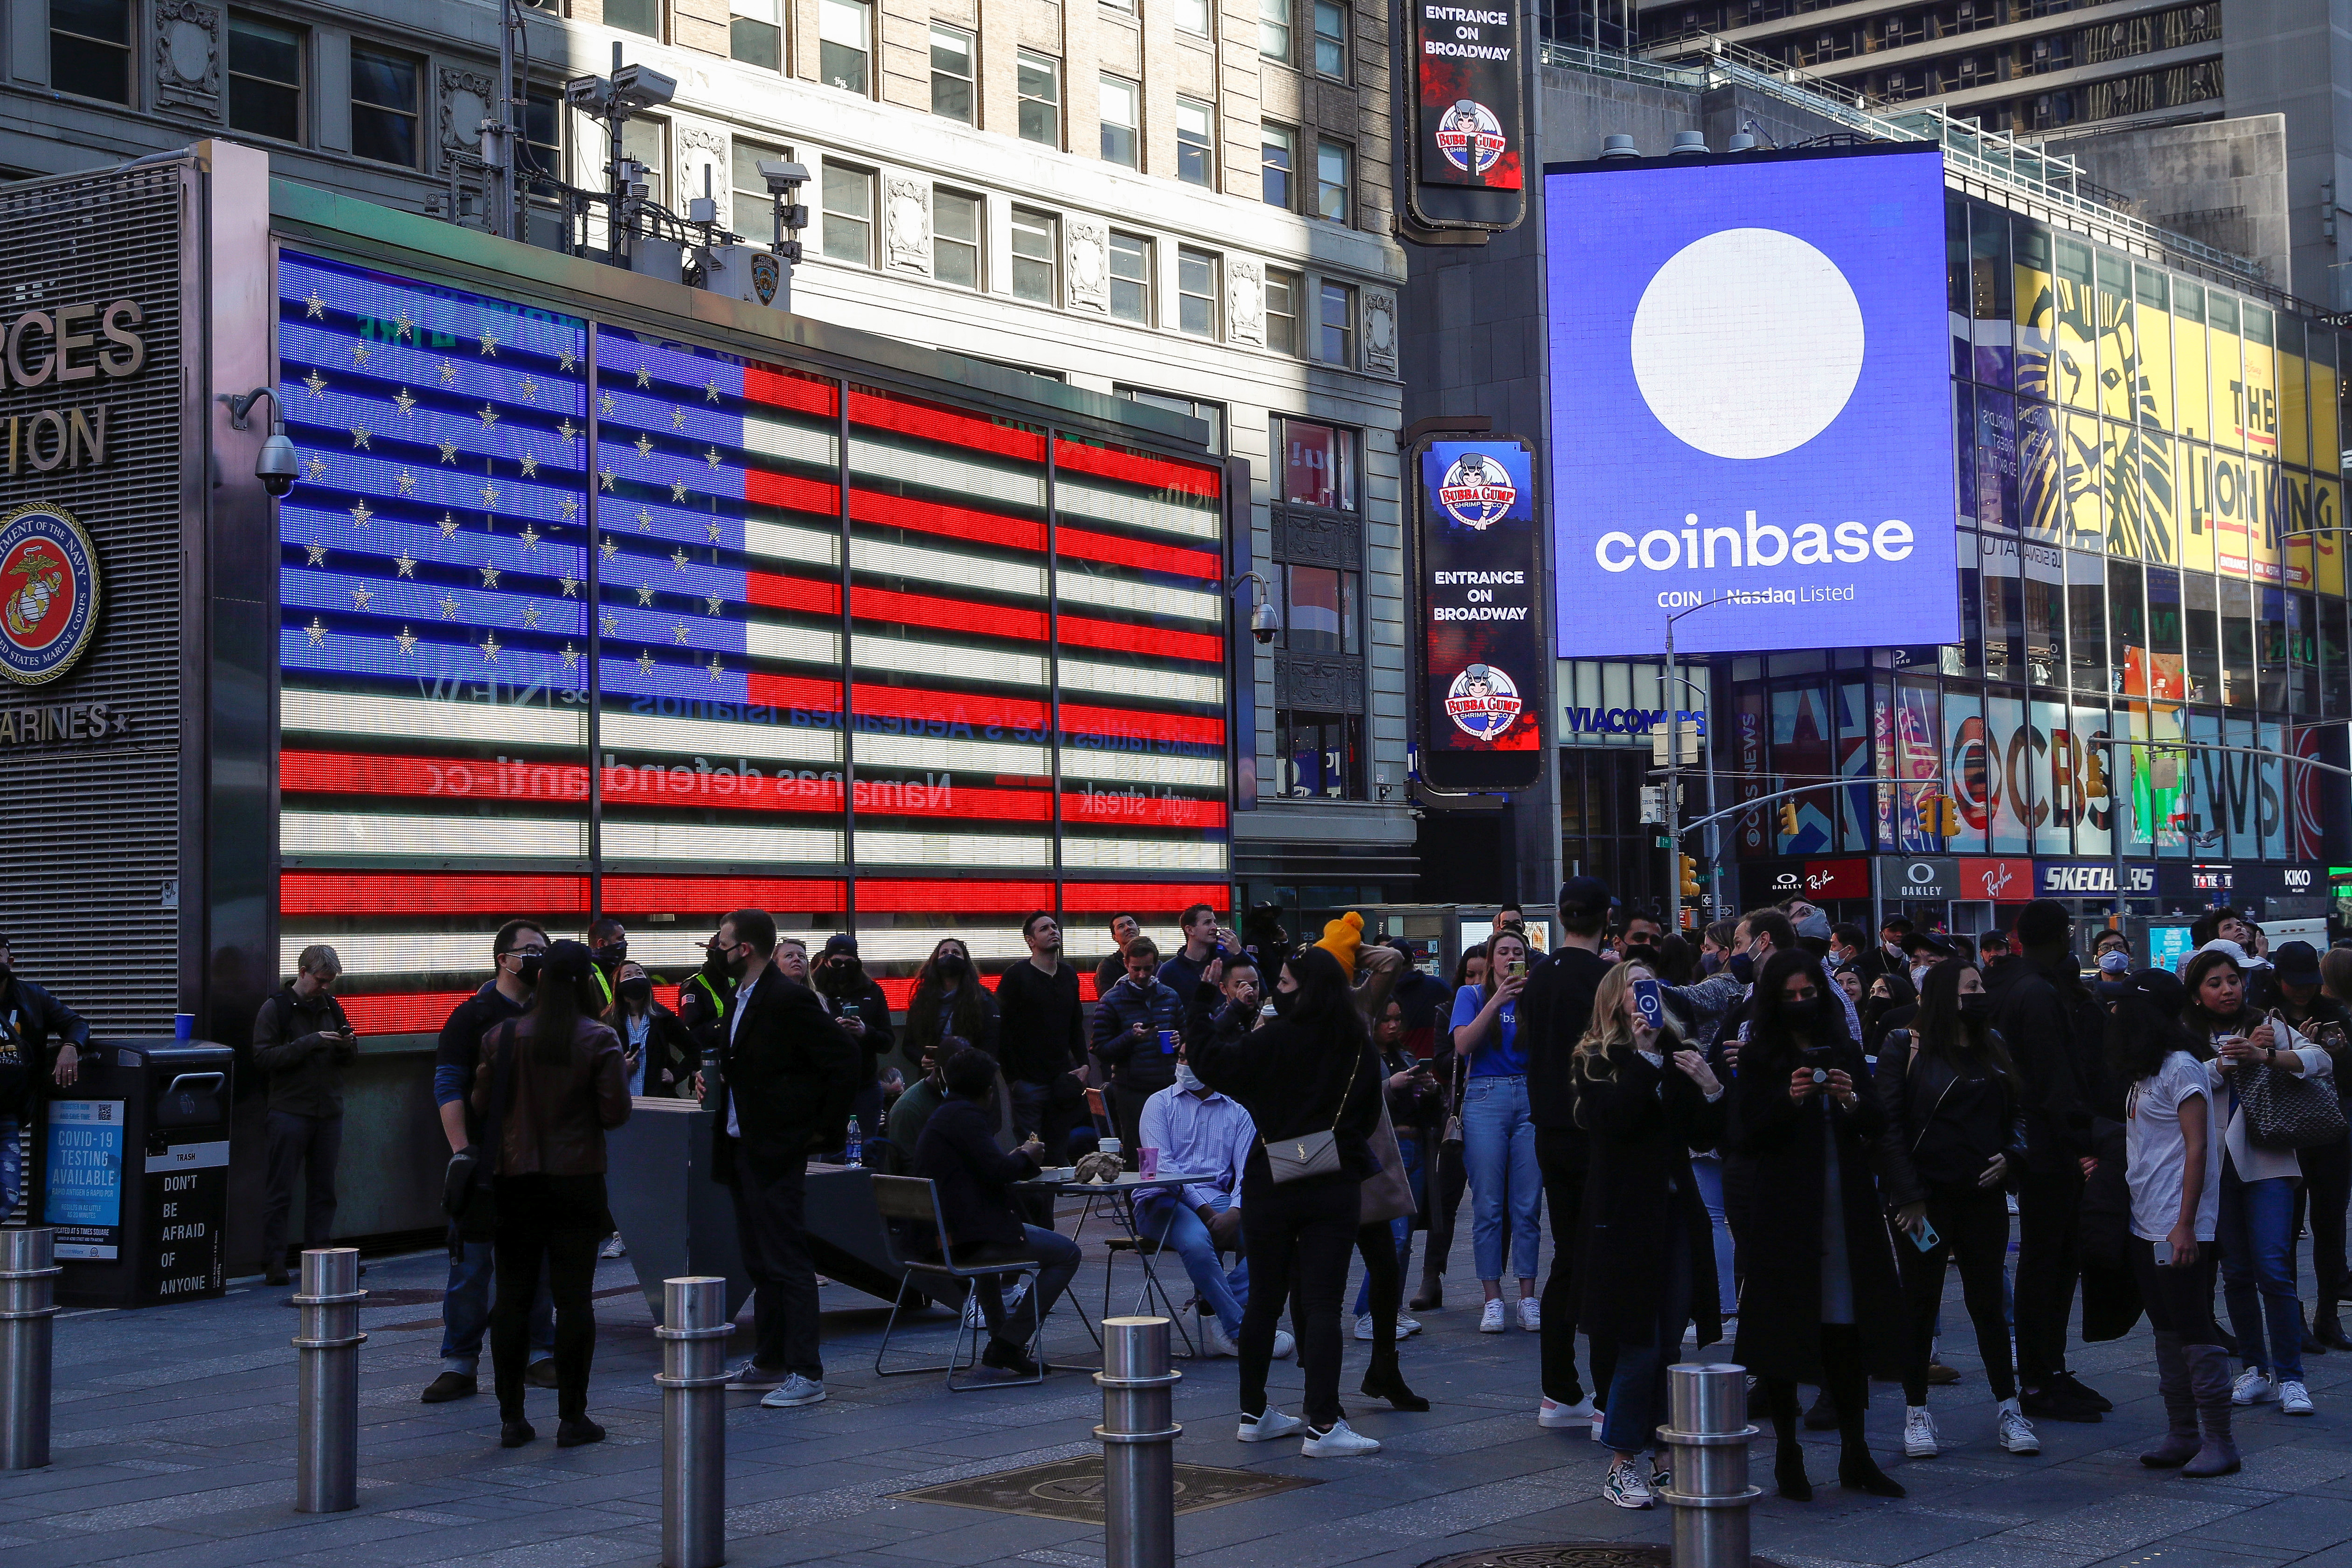 Employees of Coinbase Global Inc, the biggest U.S. cryptocurrency exchange, watch as their listing is displayed on the Nasdaq MarketSite jumbotron at Times Square in New York, U.S., April 14, 2021. REUTERS/Shannon Stapleton